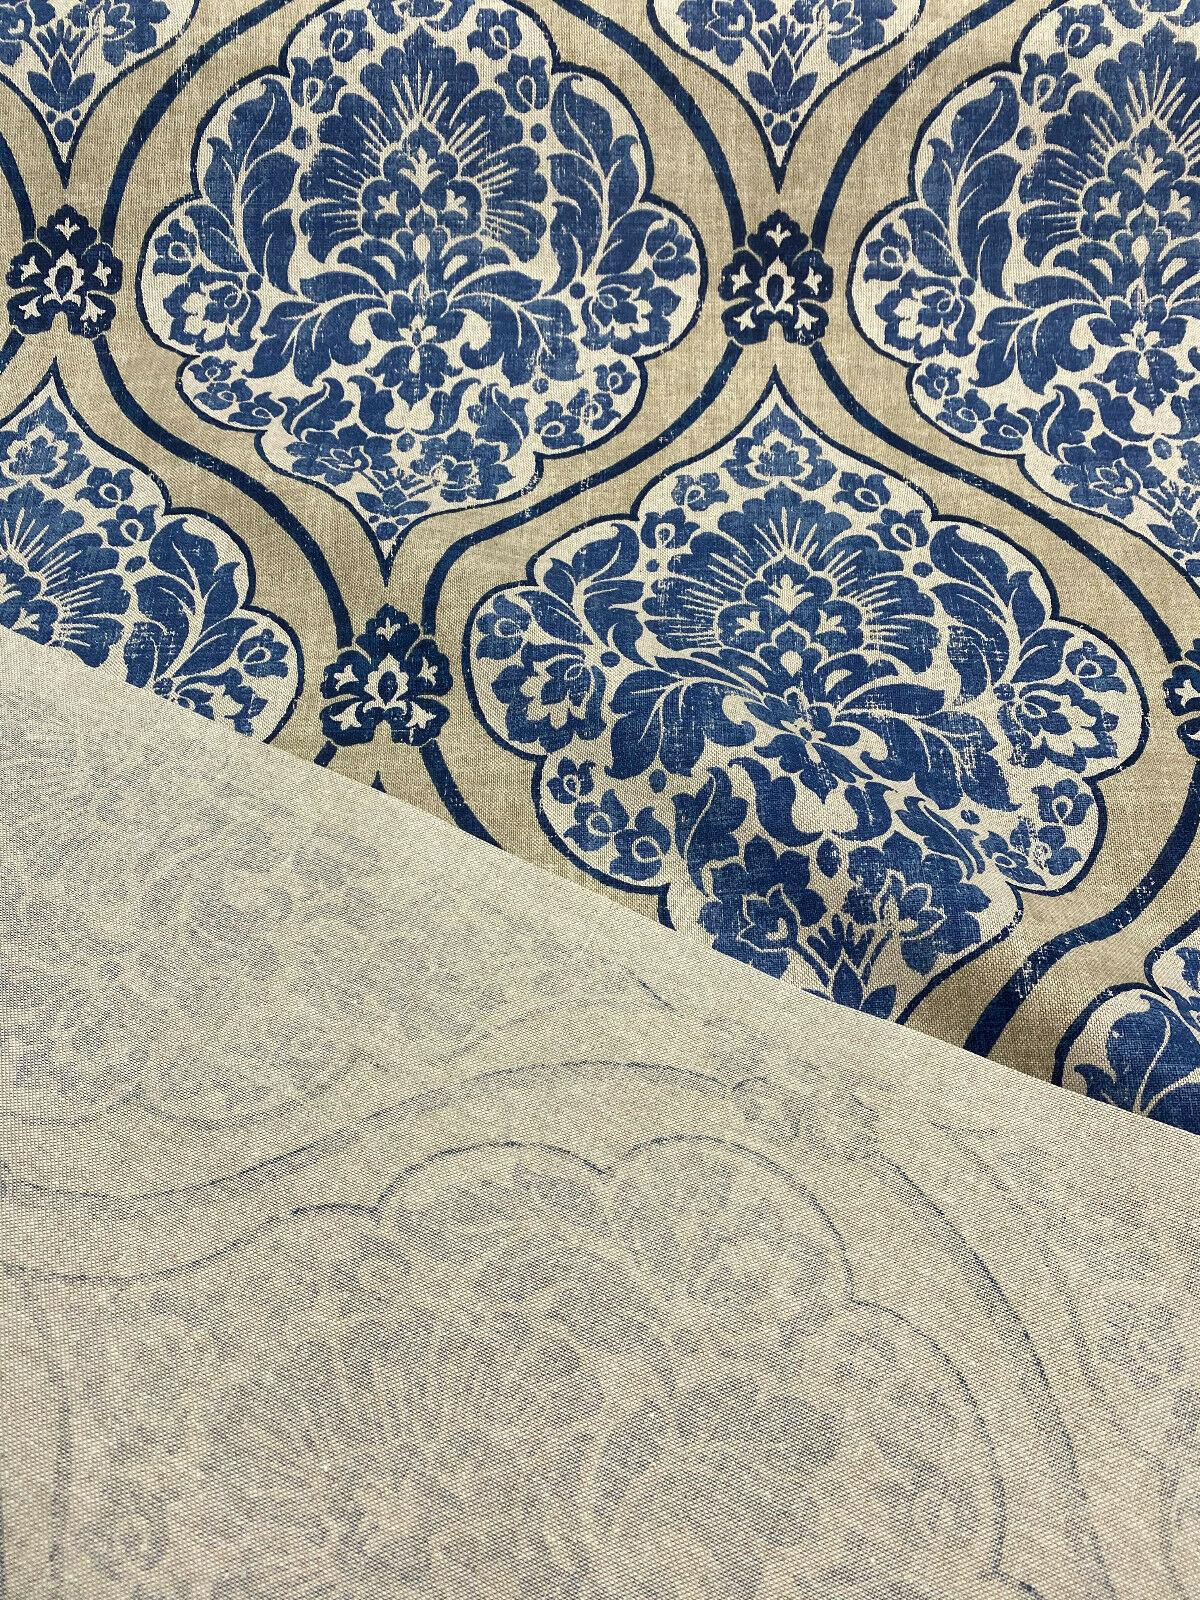 Navy Damask Blue Upholstery Fabric by the Yard Cream Medallion